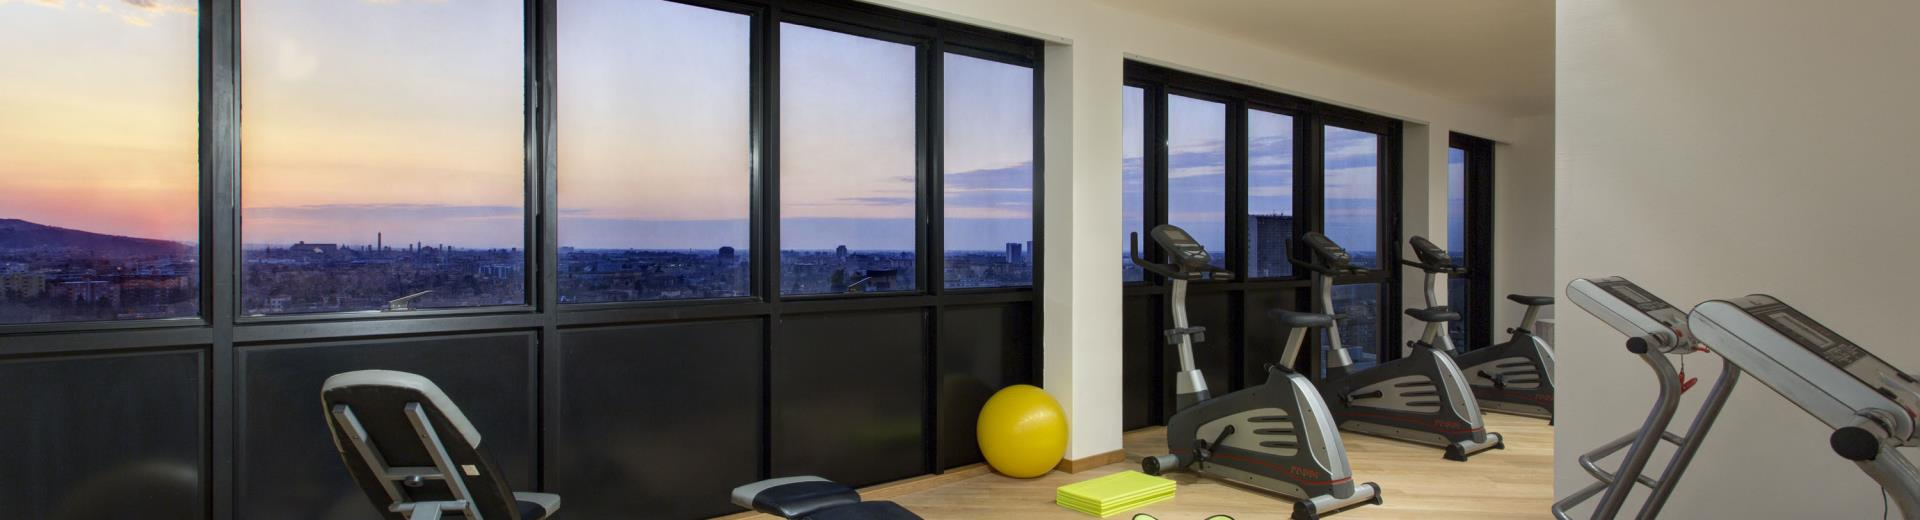 Your workout at the top floor of the hotel